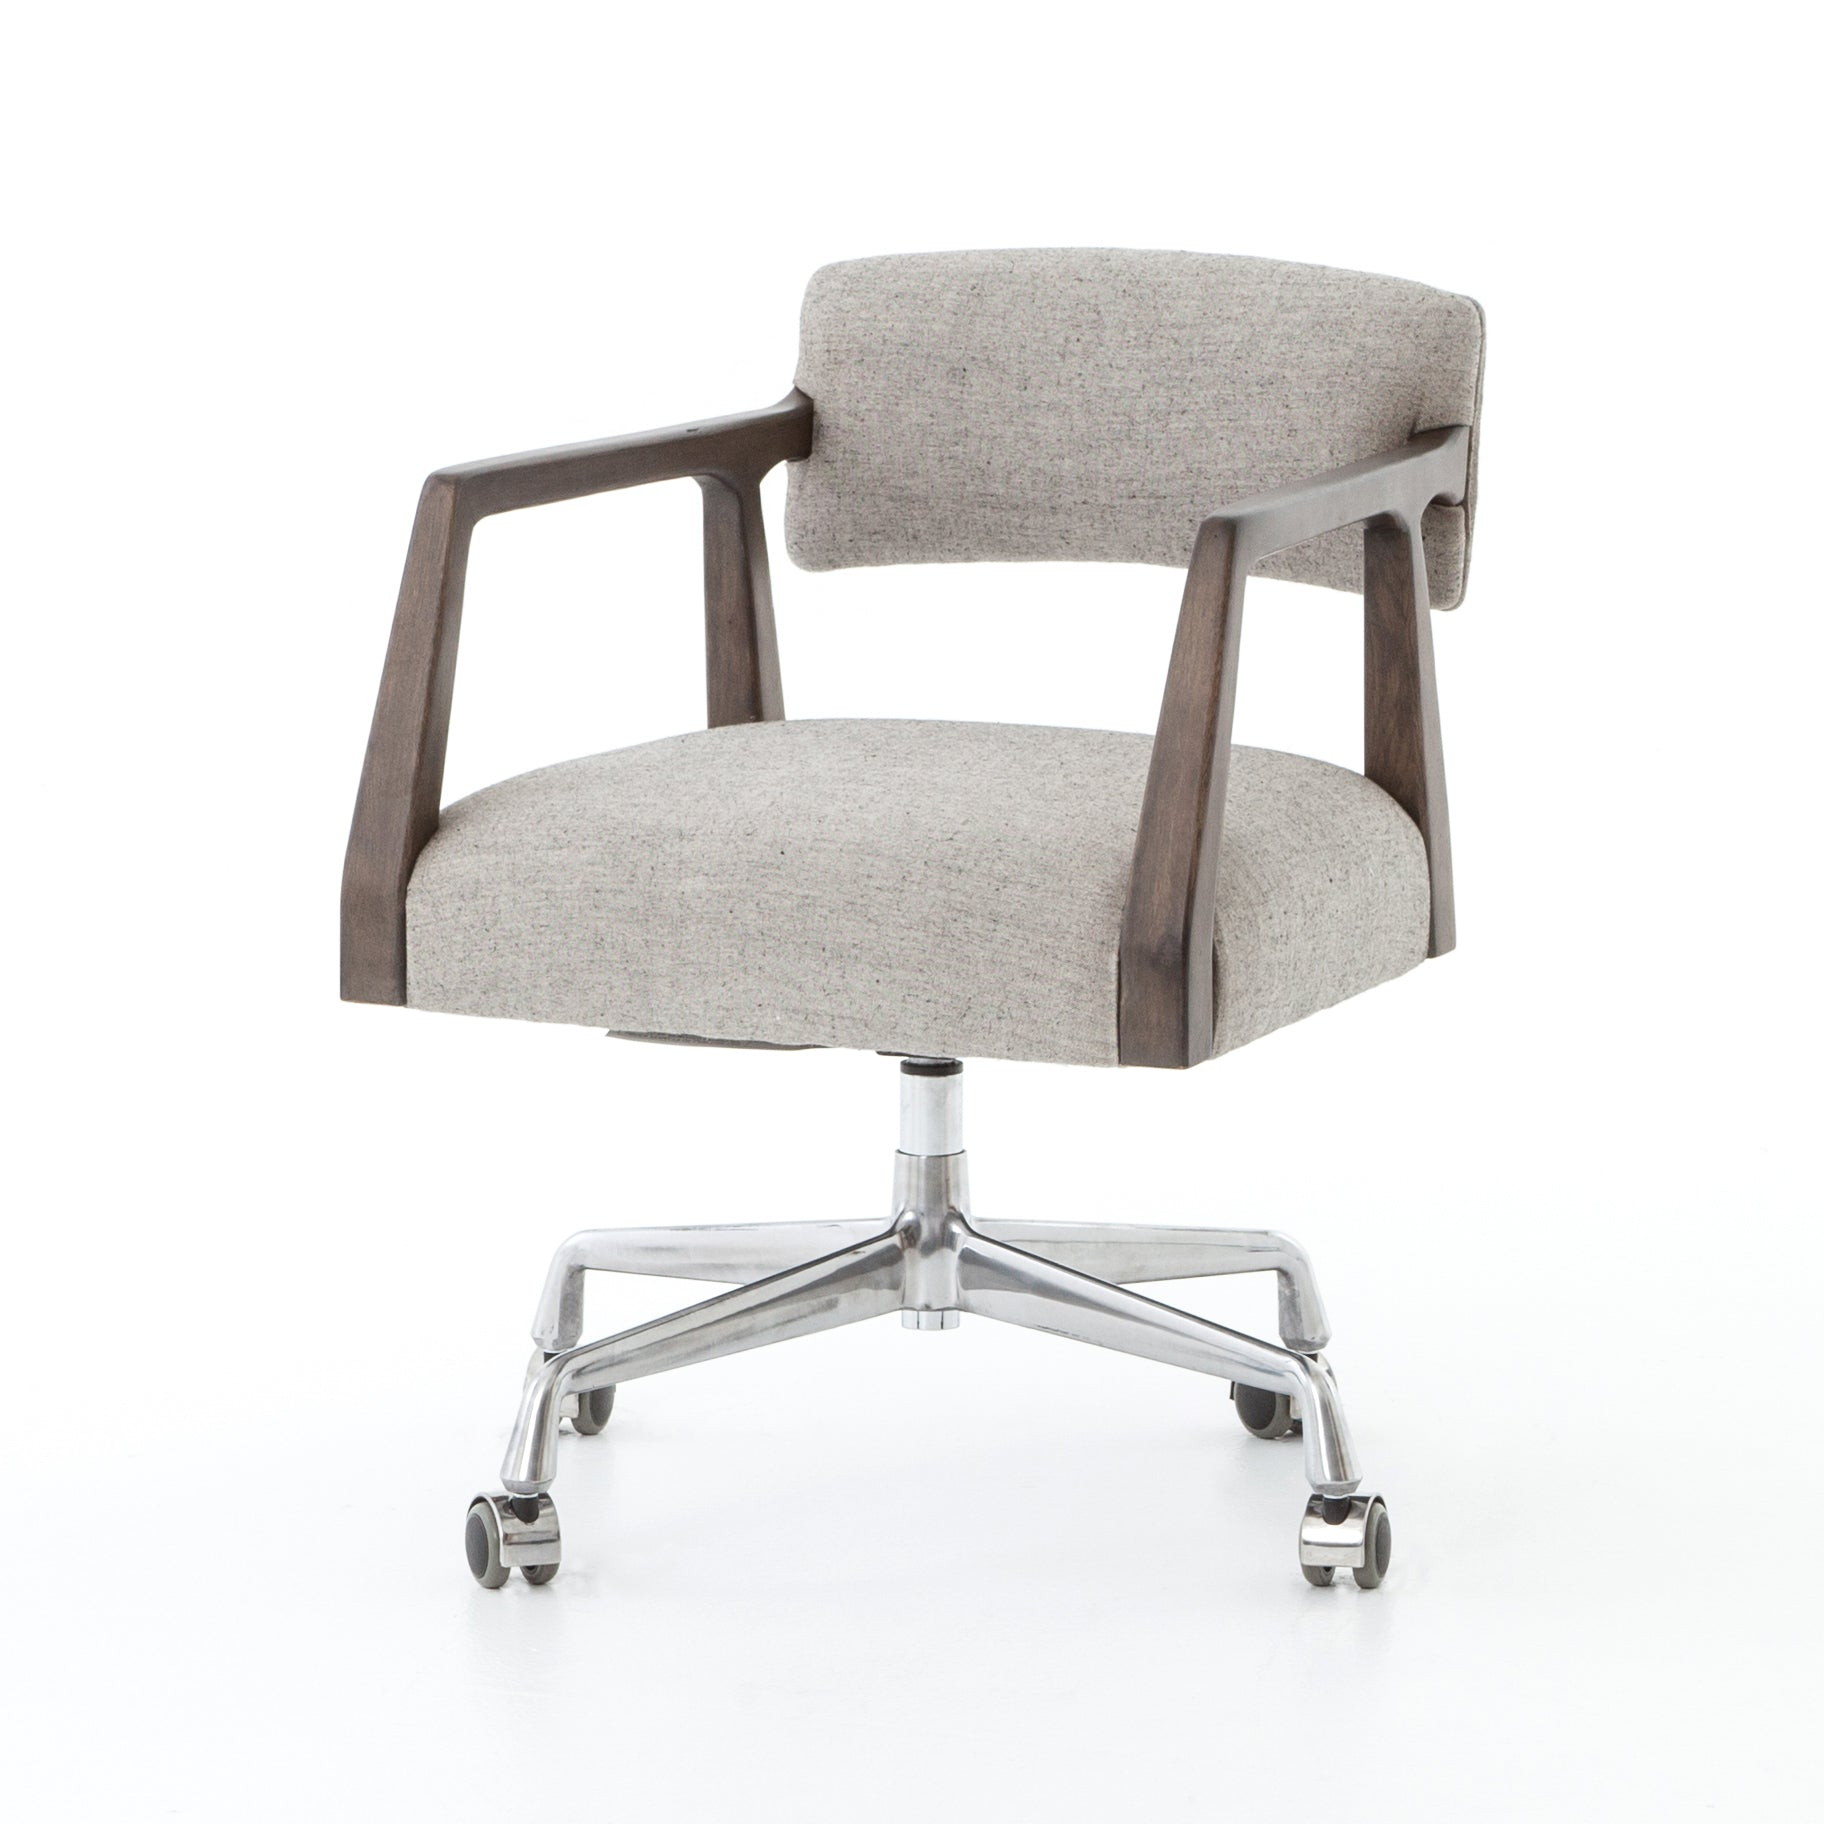 furniture office devrik deskchair desk chair products sq home jennifer sw